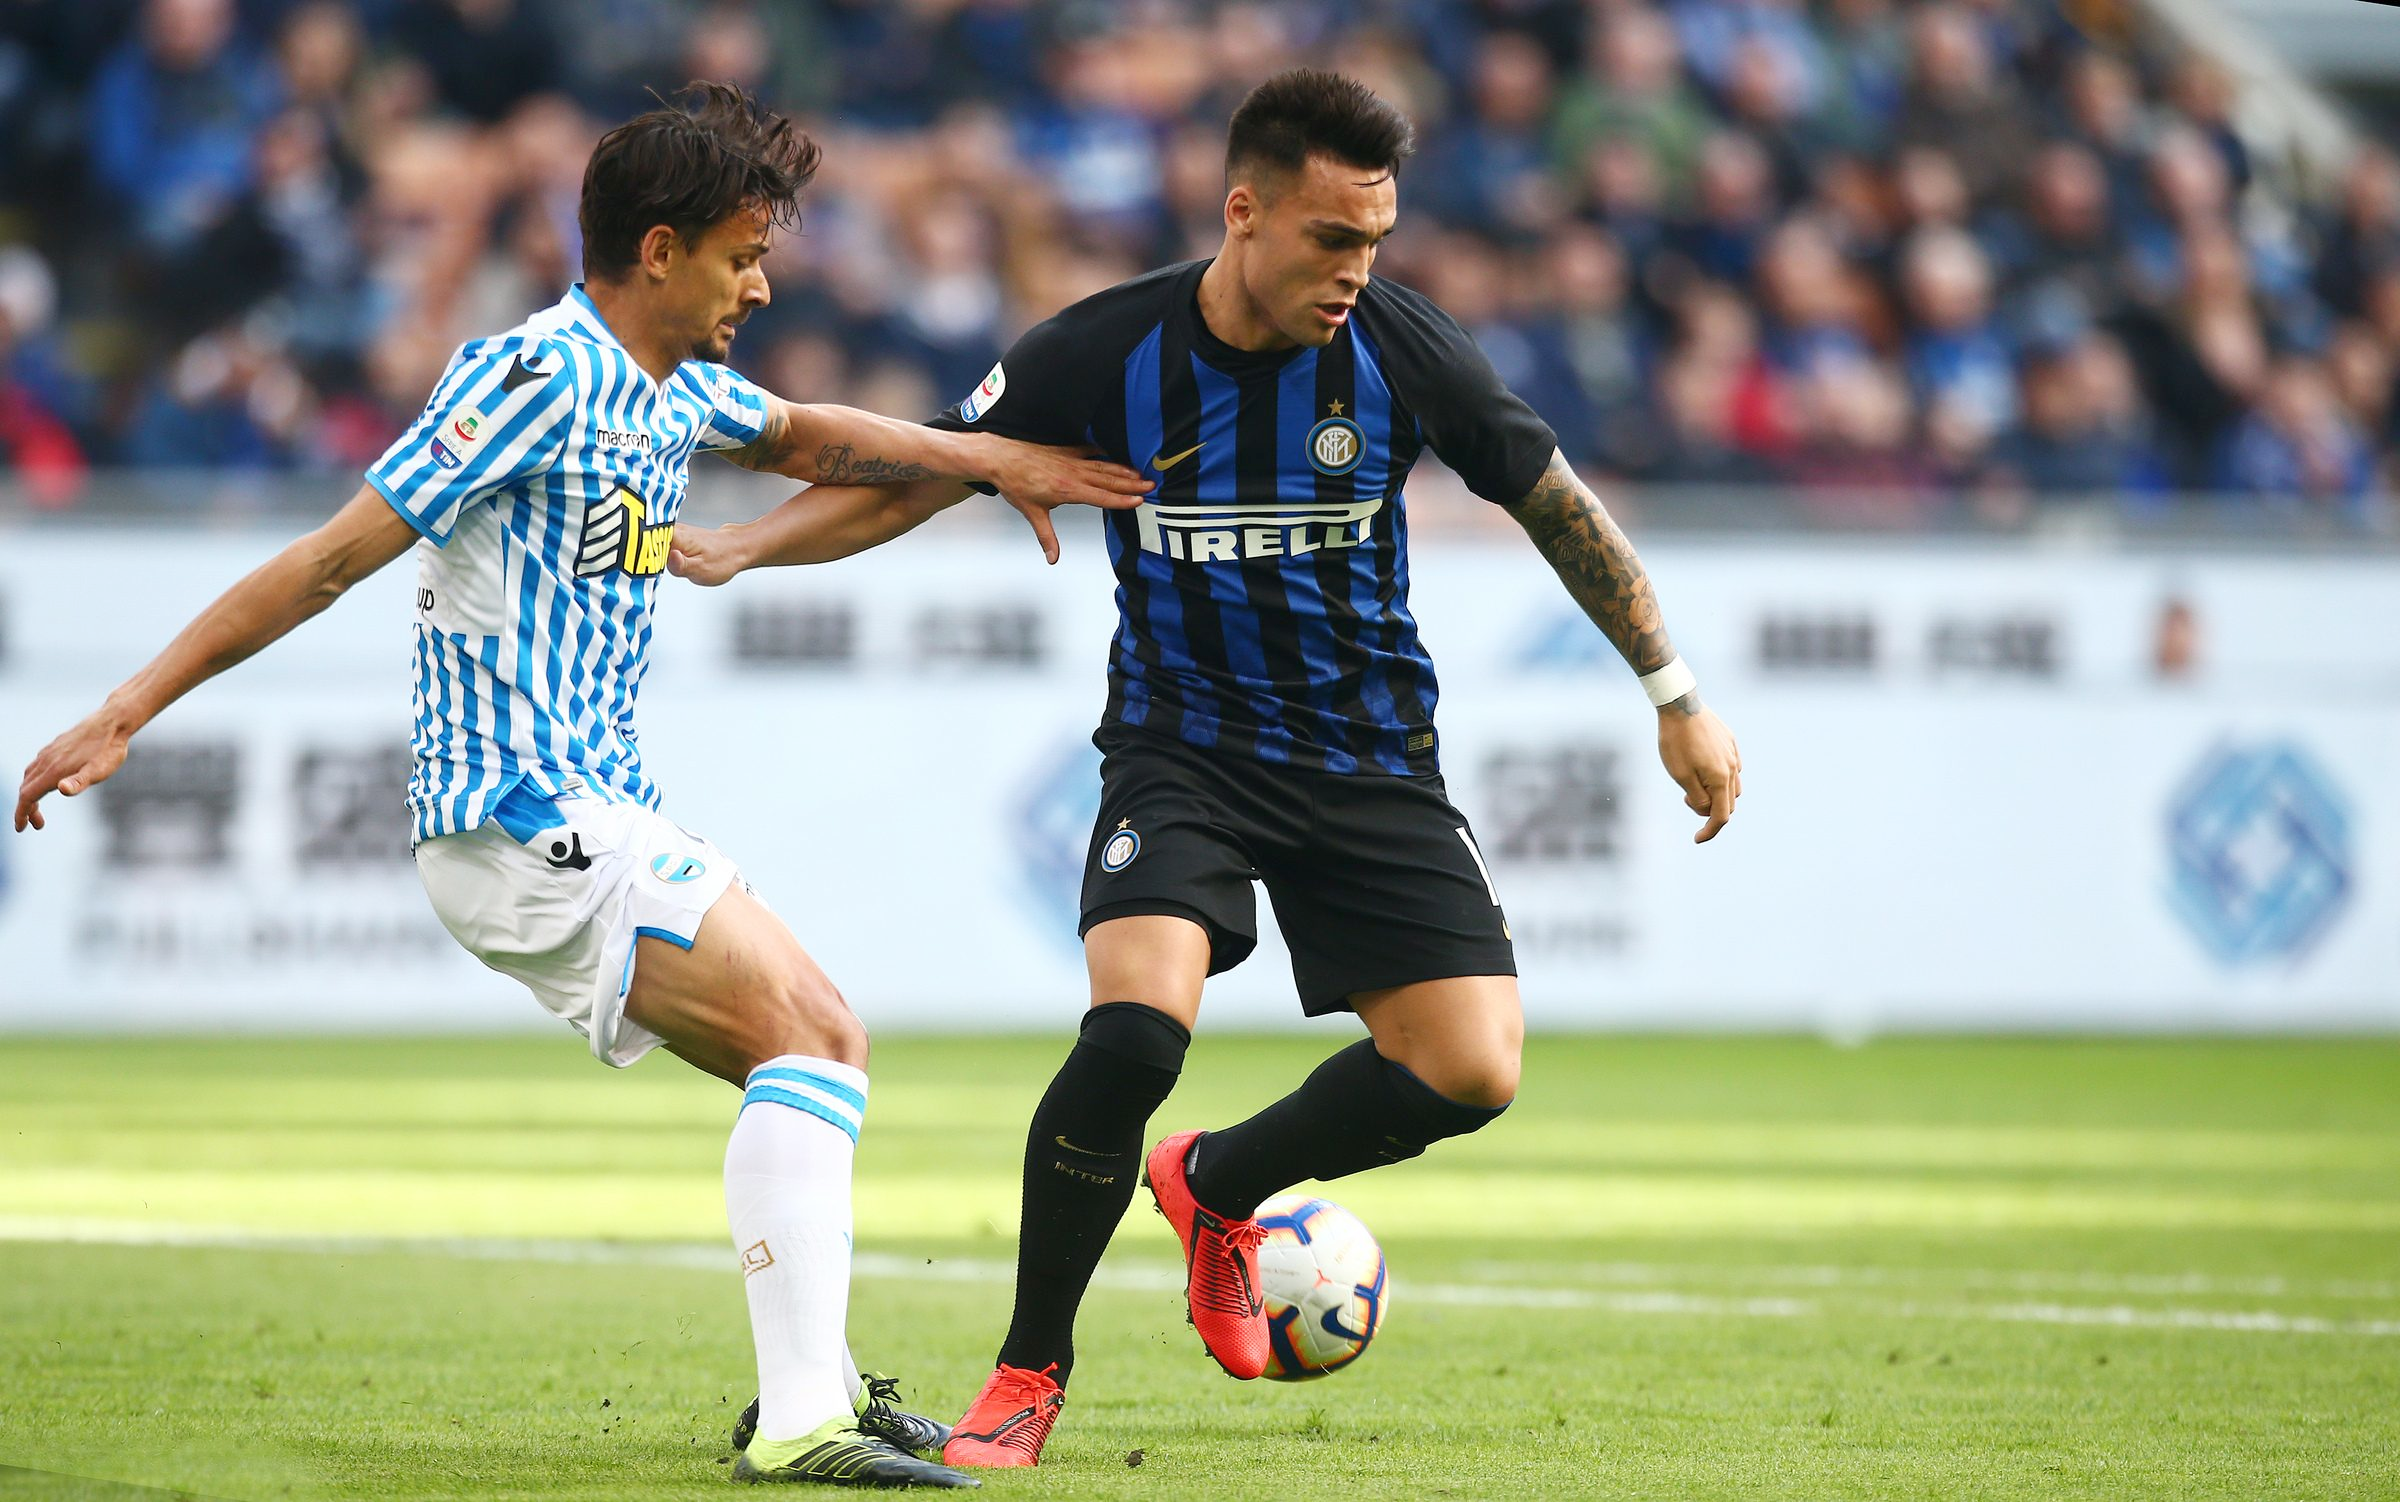 Where To See The Match Inter Spal On Tv And Stream The Latest On The Formations Match Streaming Antonio Conte